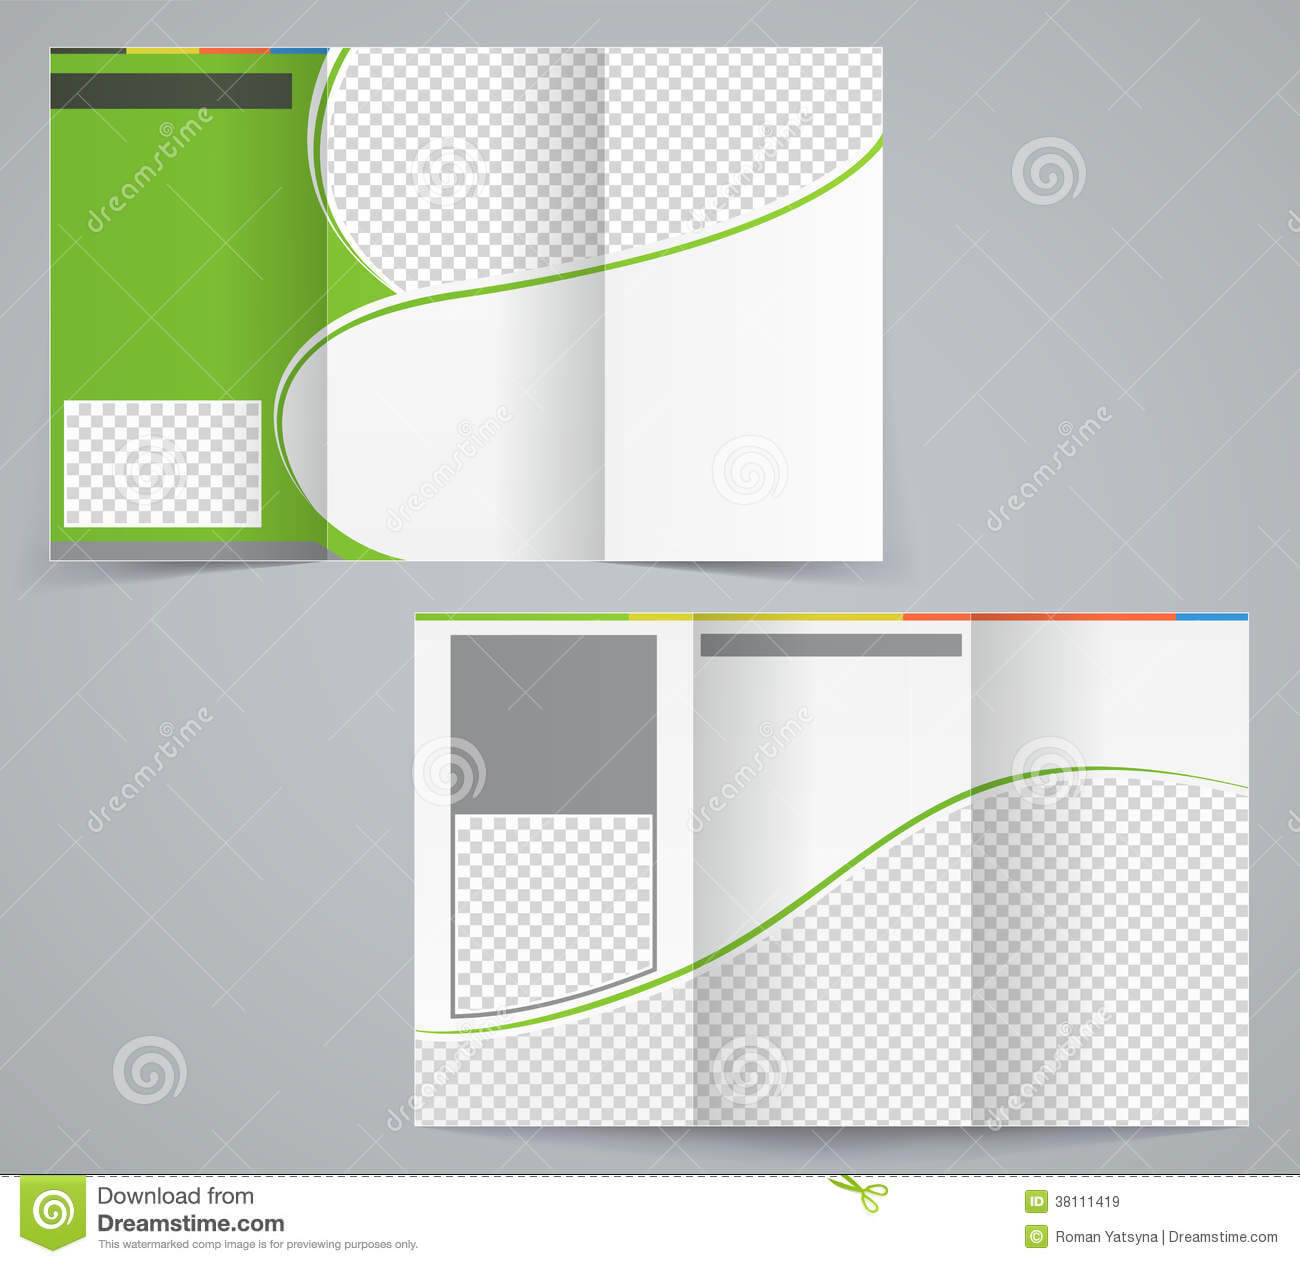 Tri-Fold Business Brochure Template, Vector Green Stock for Brochure Template Illustrator Free Download